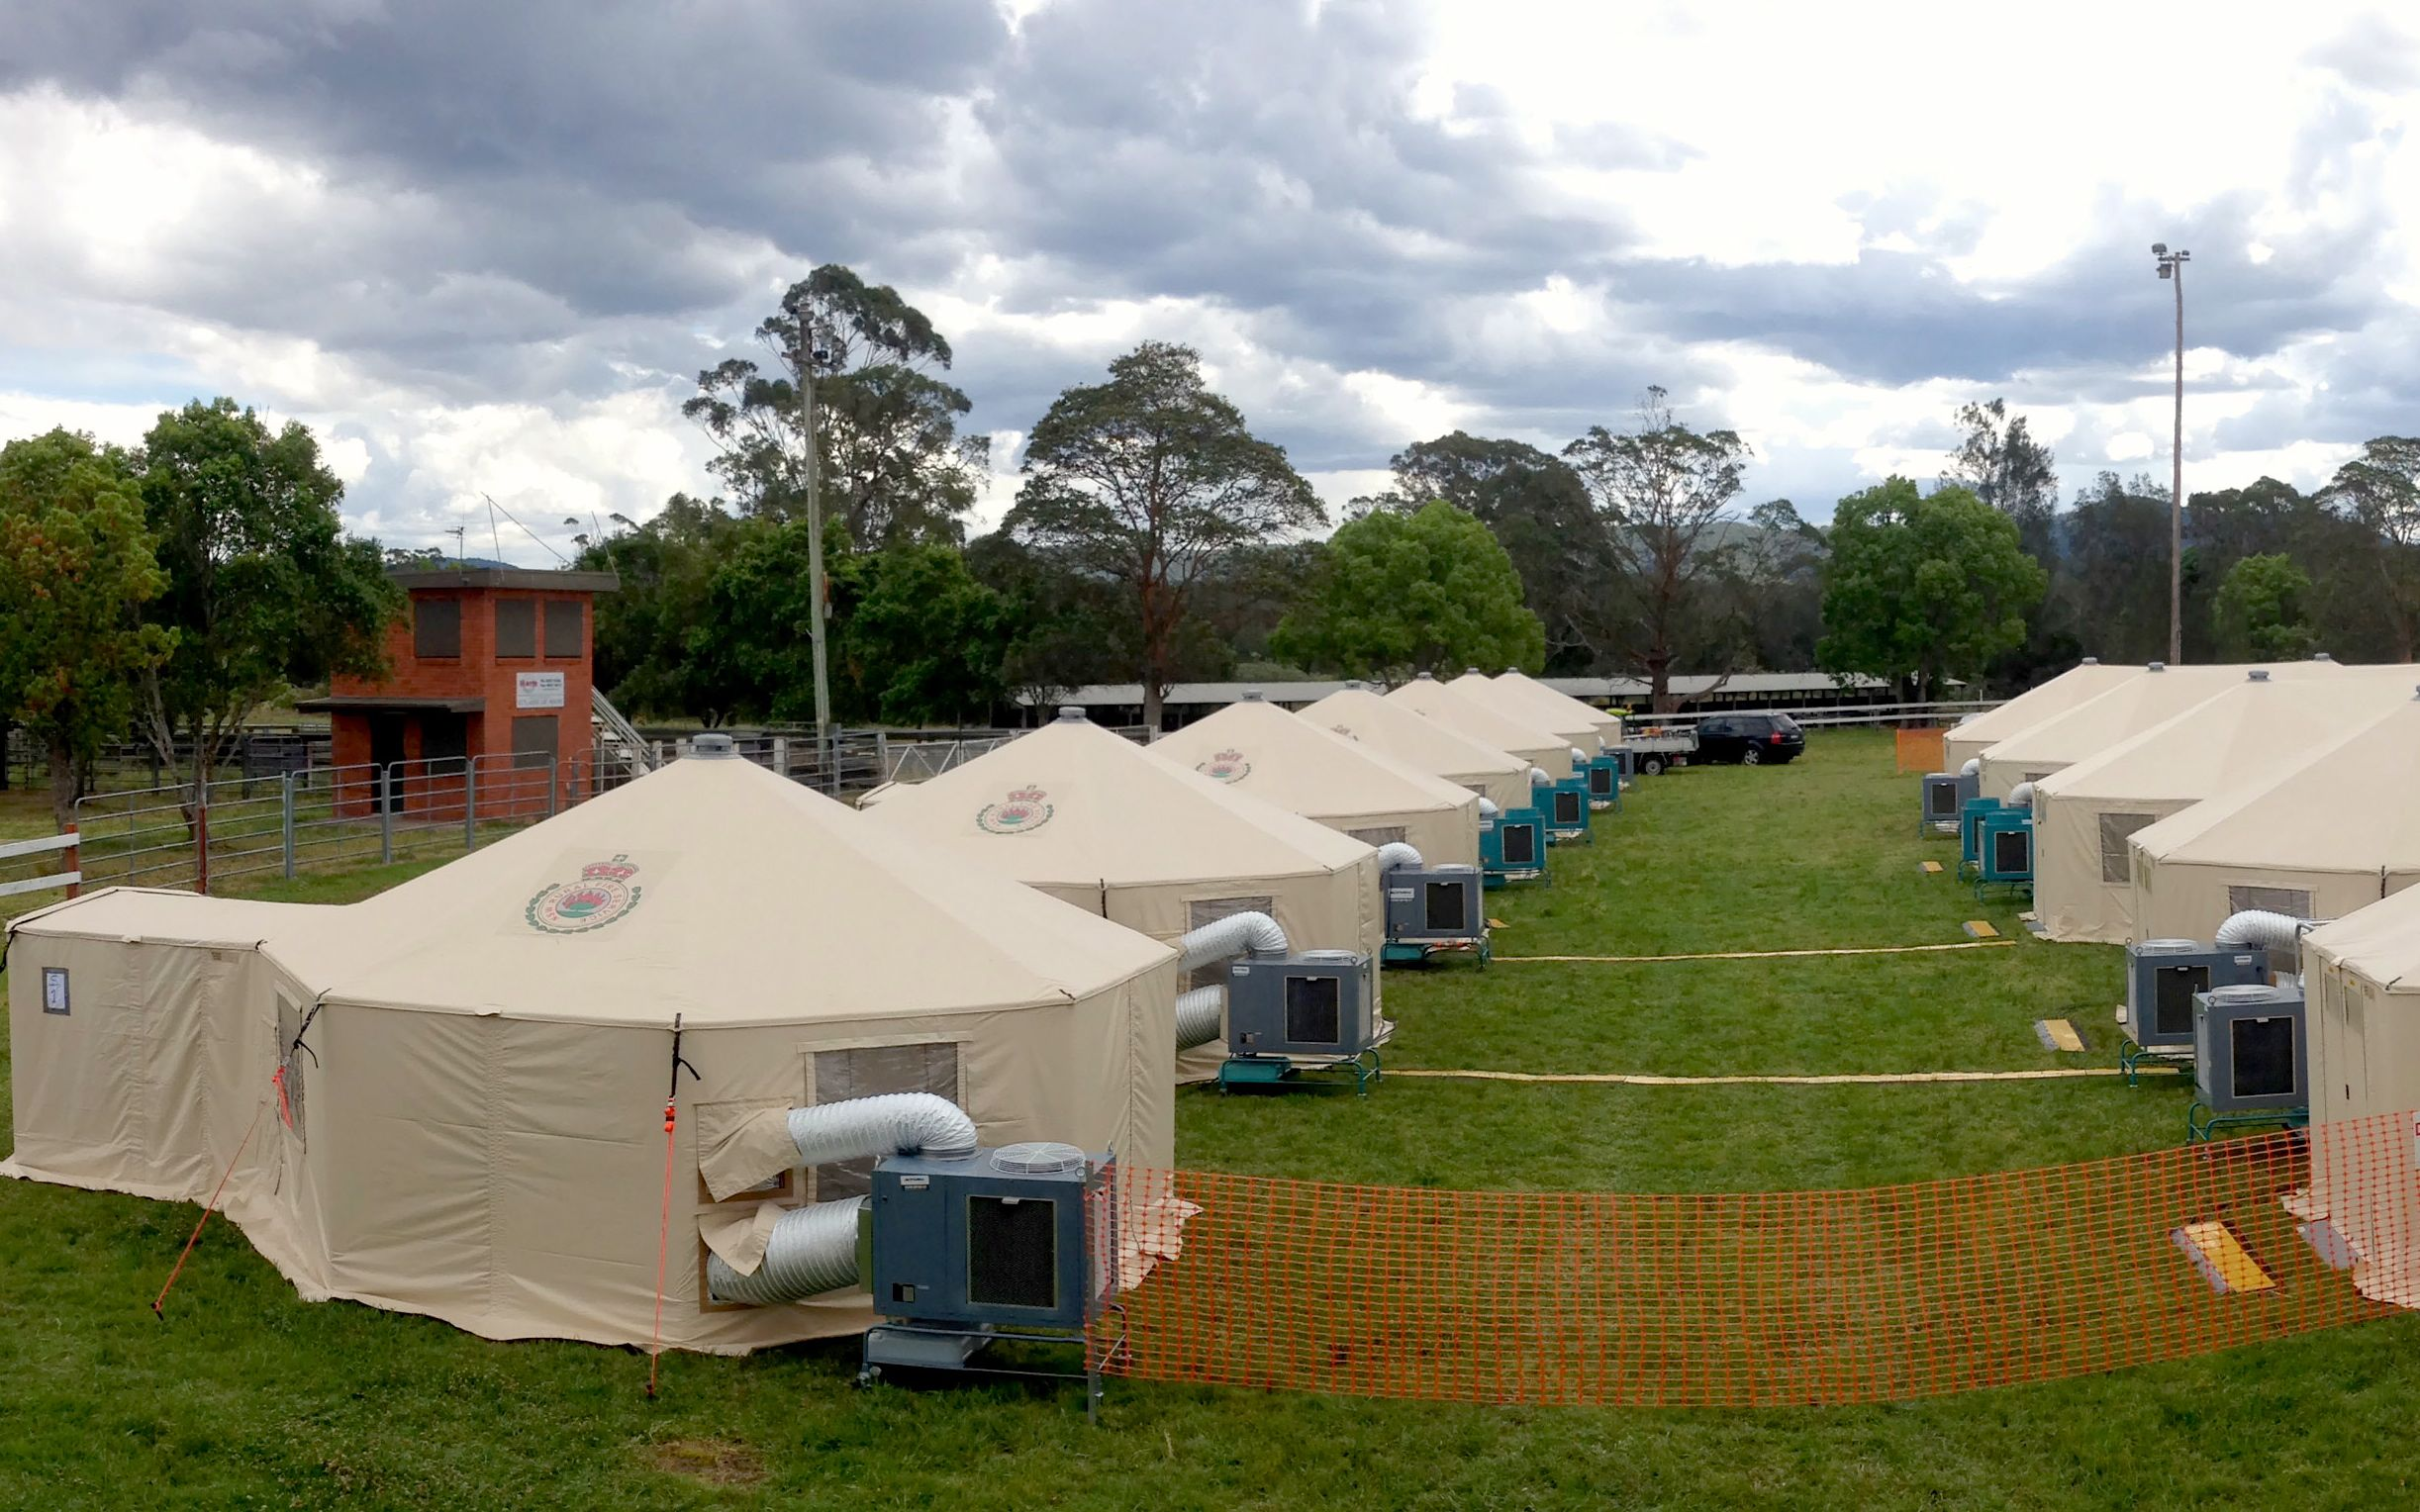 Portable Air Conditioner Hire Active Air Rental Air Conditioning  #6C4817